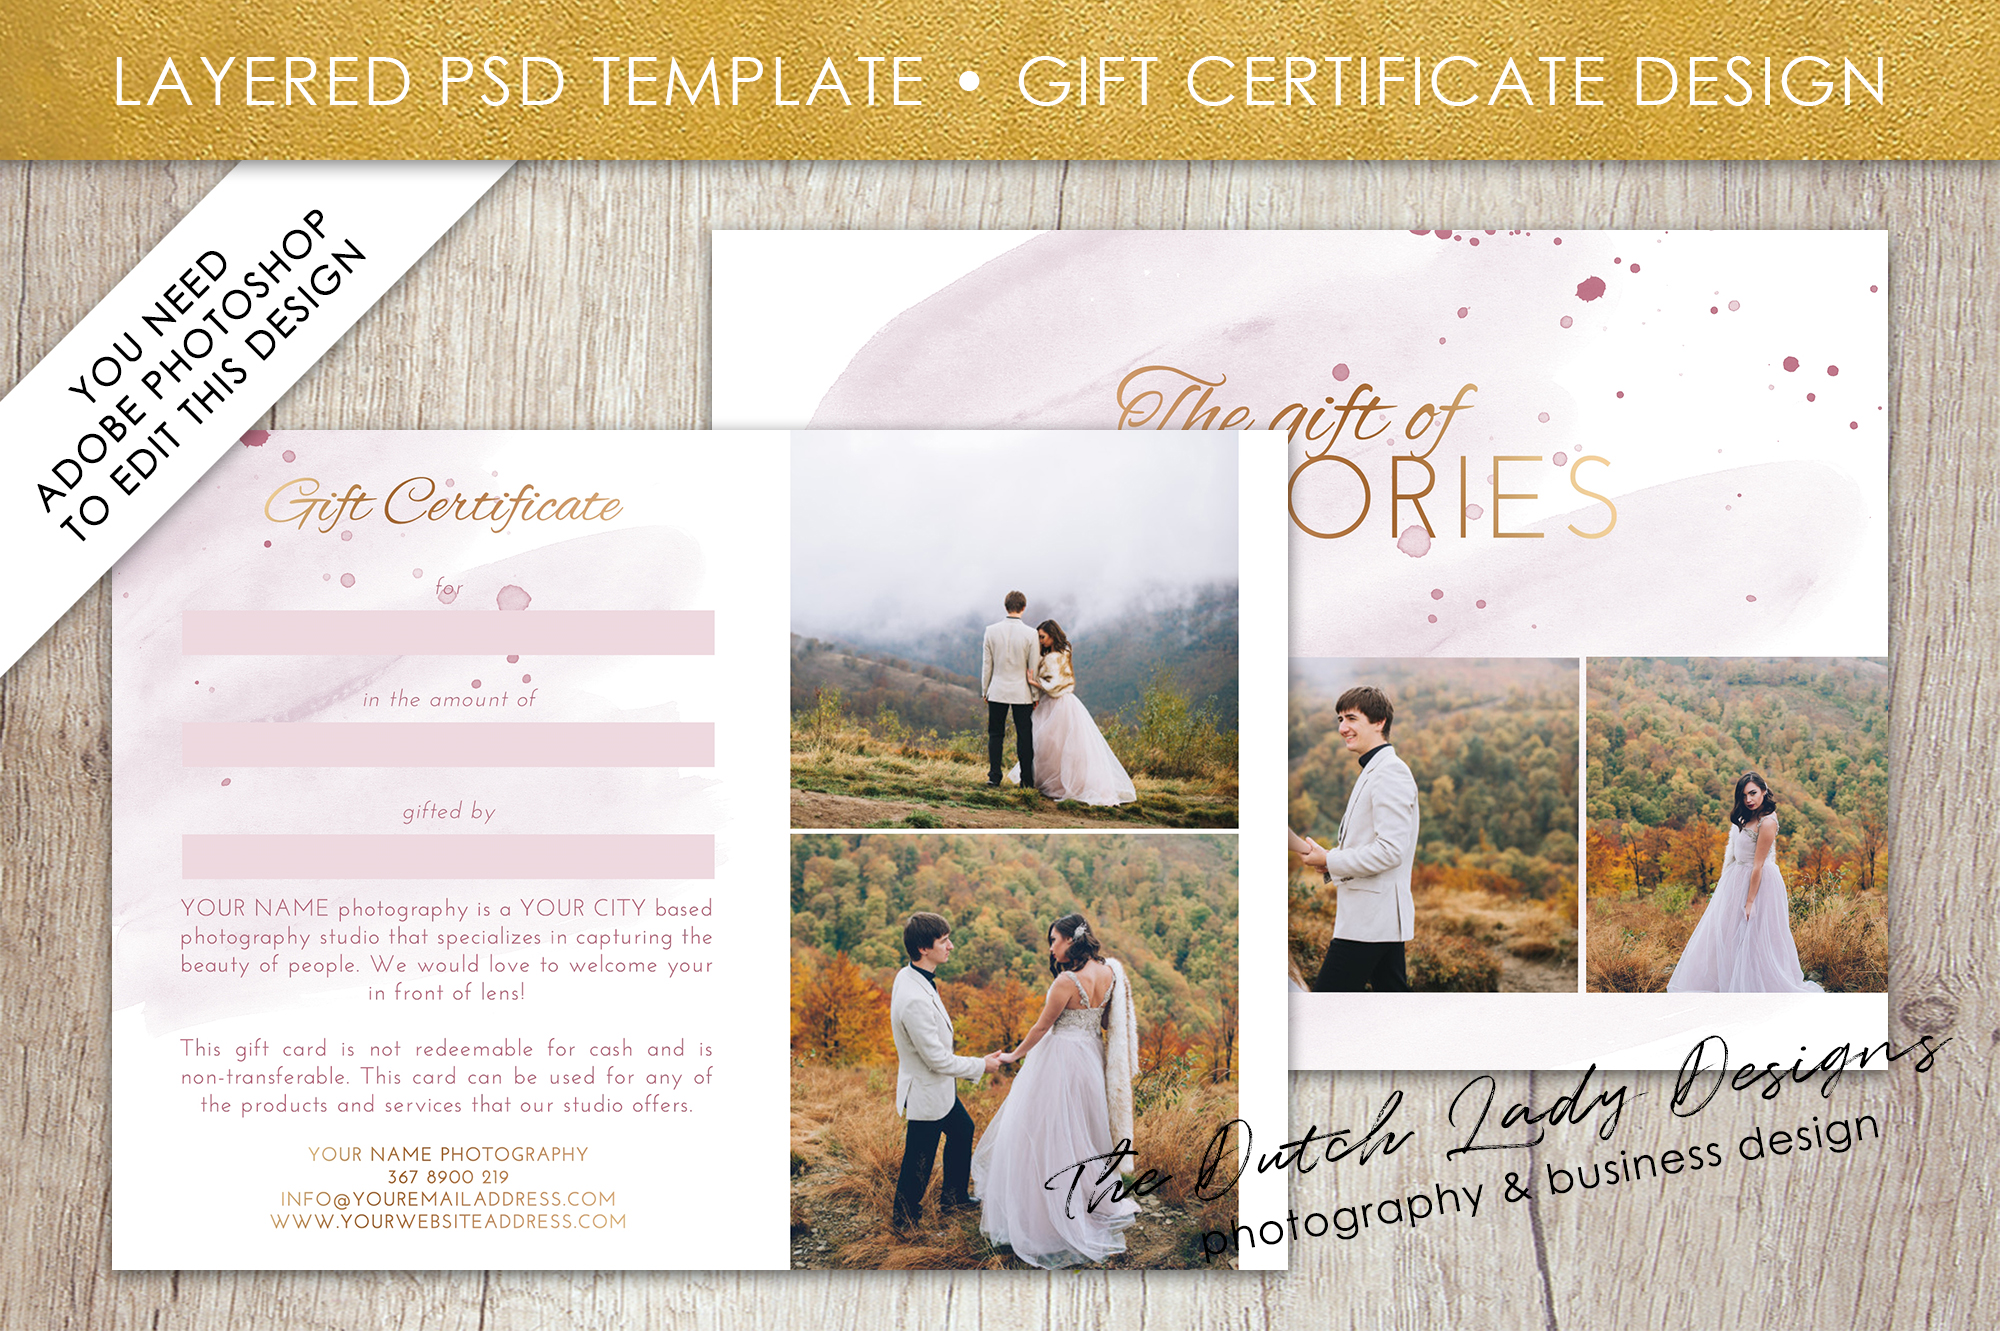 Photo gift card template for adobe phot design bundles photo gift card template for adobe photoshop layered psd template design 36 example yelopaper Choice Image